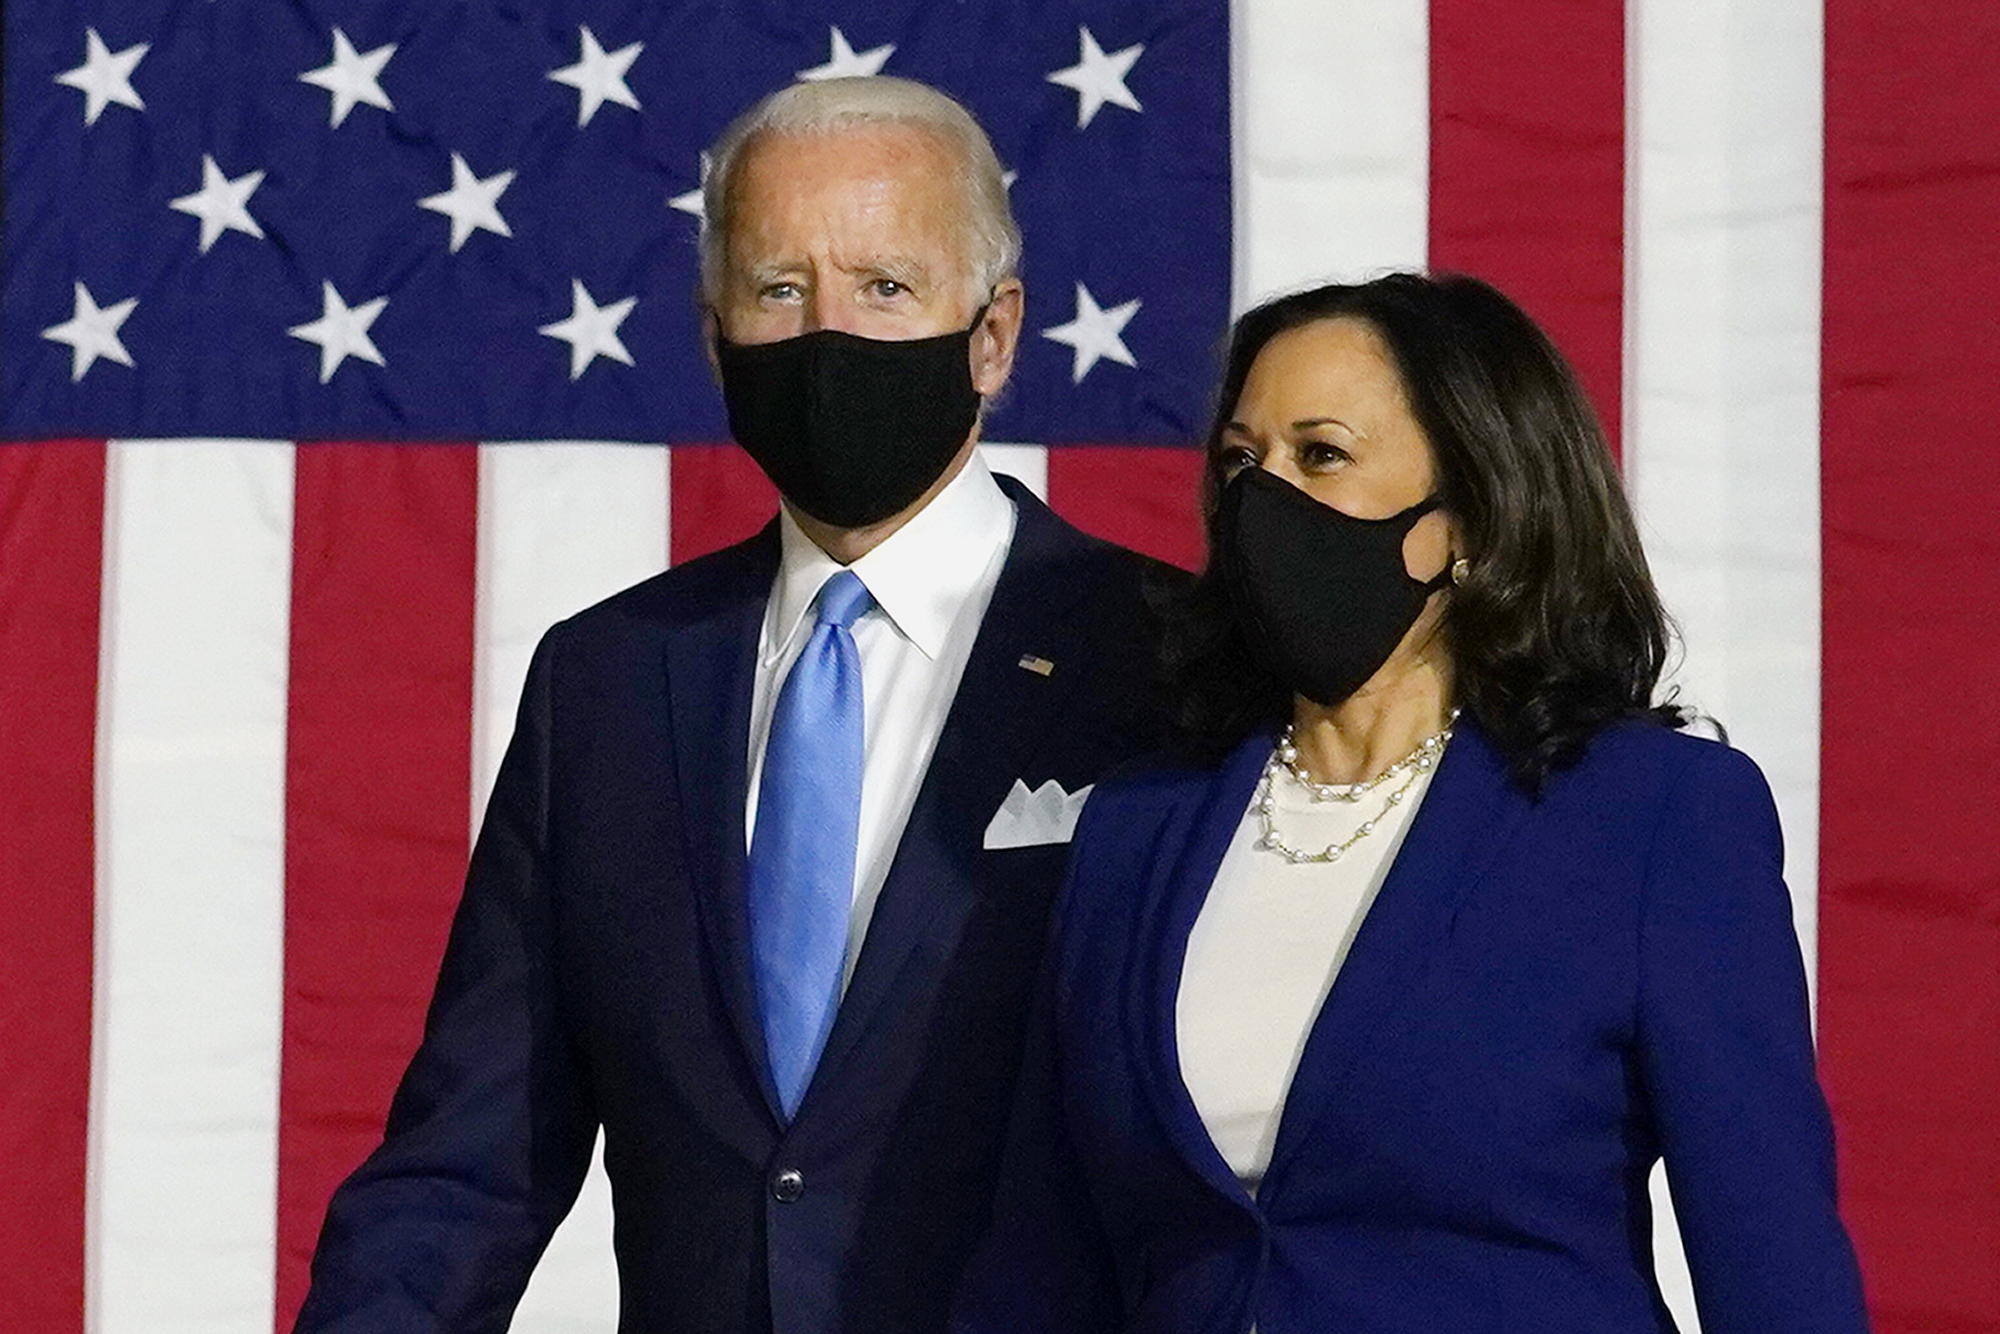 Biden campaign will host virtual watch parties to engage supporters as Democratic National Convention goes almost entirely virtual